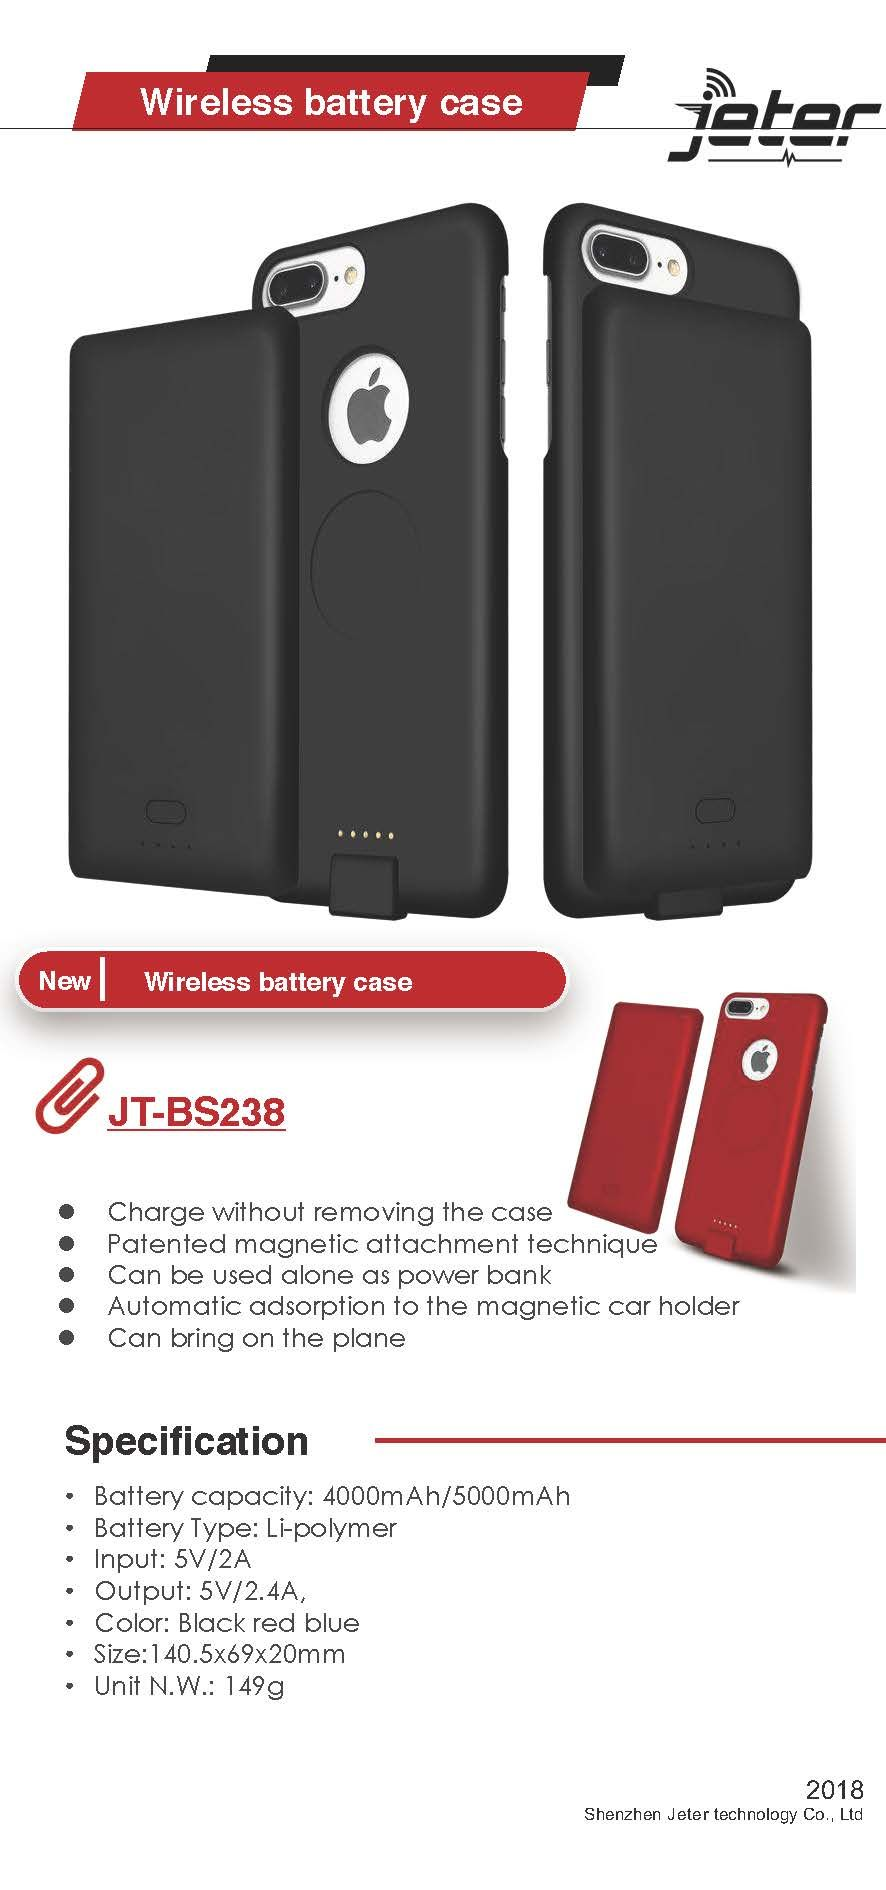 Battery Capacity 4000mah 5000mah Type Li Polymer Input 5v 2a Output 2 4a Color Black Red Blue Size 140 5x69x20mm Unit N W 149g